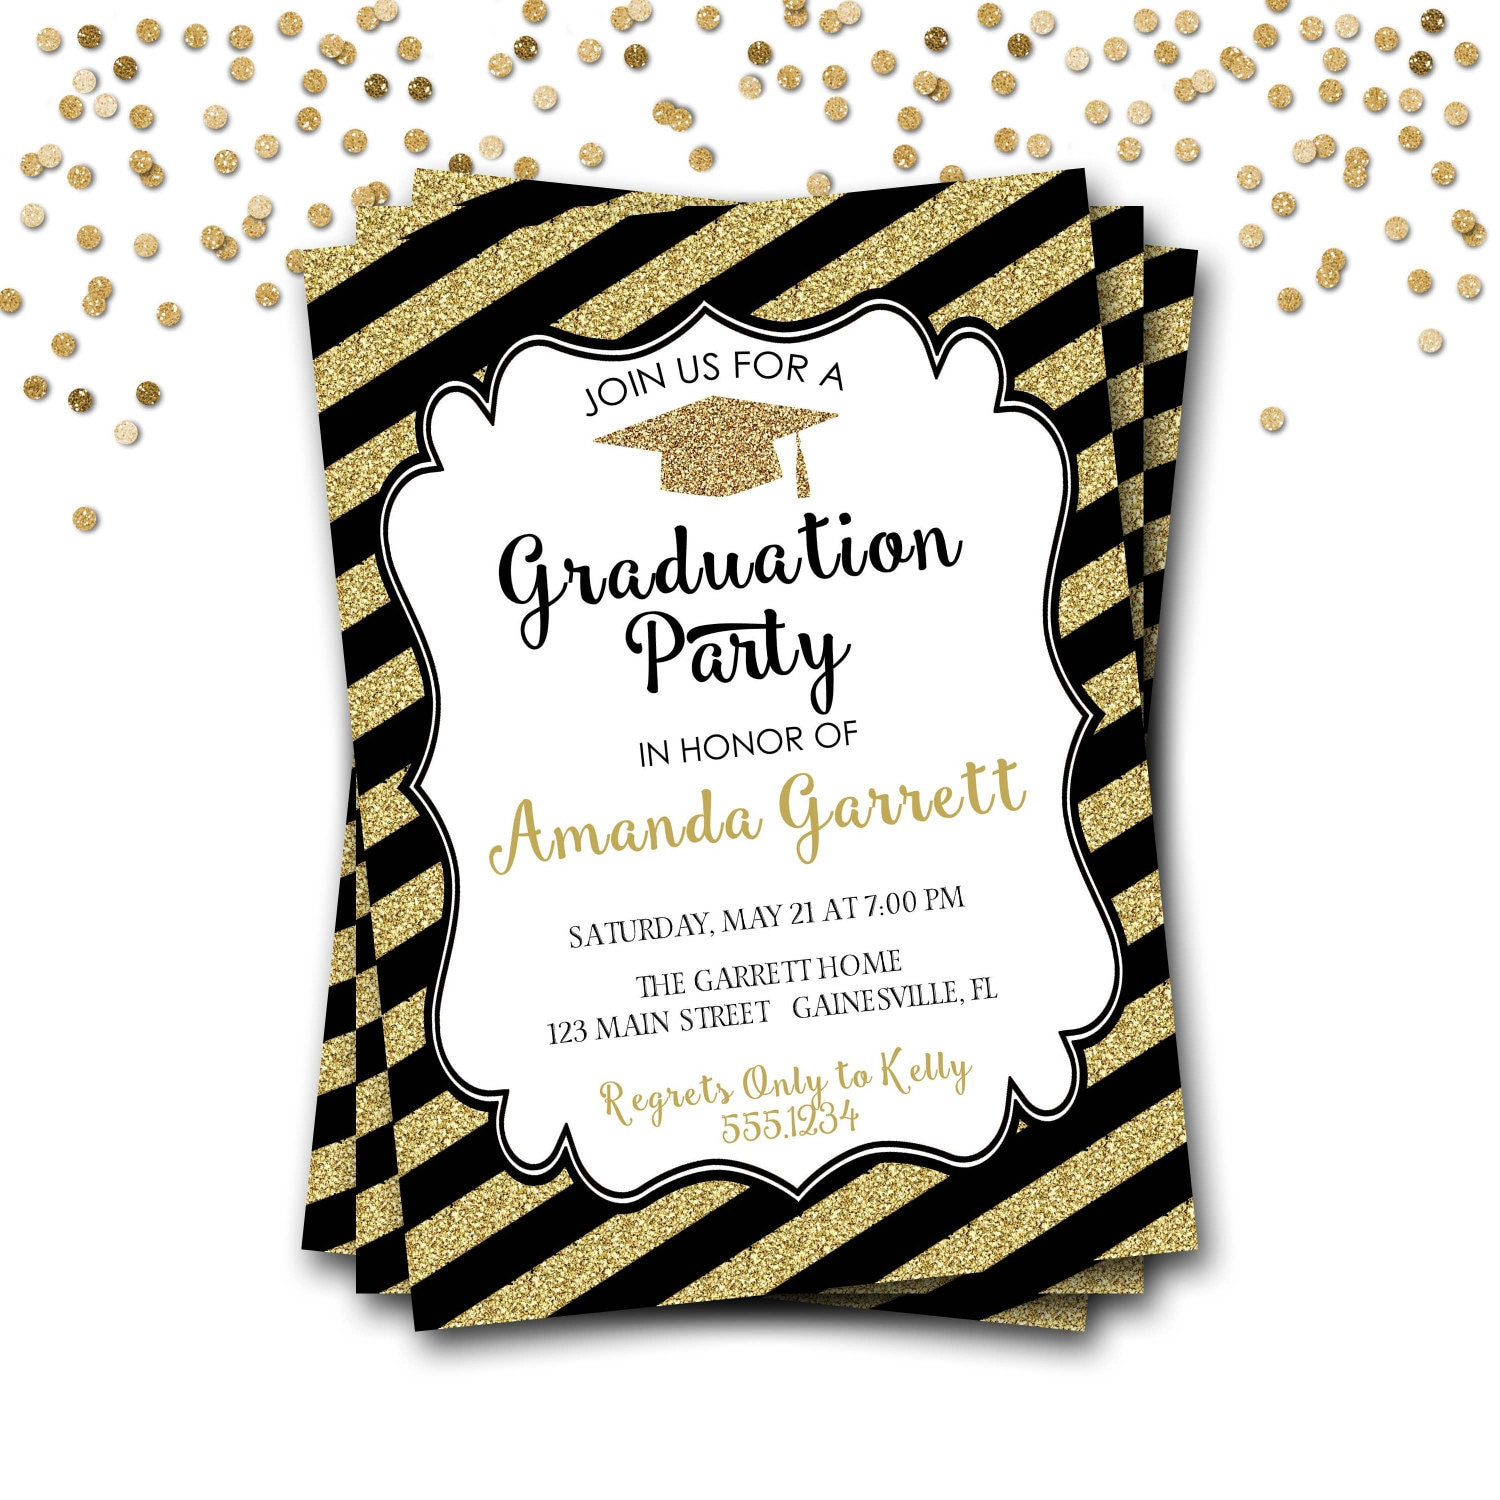 Black and Gold Graduation Invitation Gold Graduation Invitation – Black and Gold Graduation Invitations